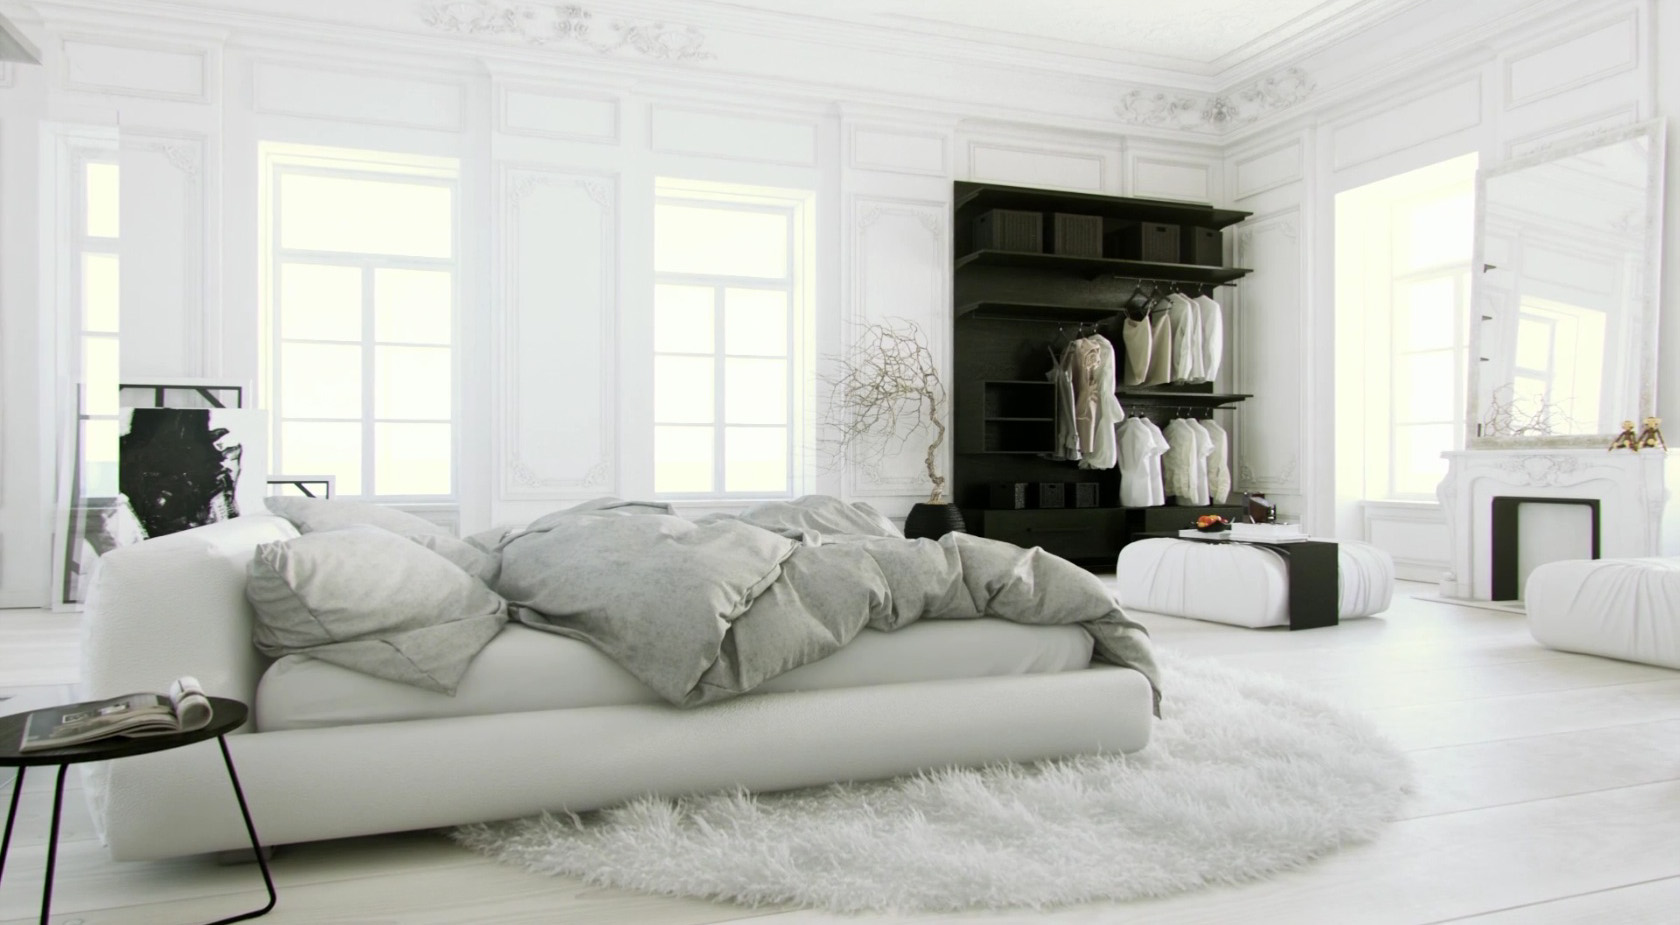 All white bedroom design ideas for Bedroom decor ideas pictures